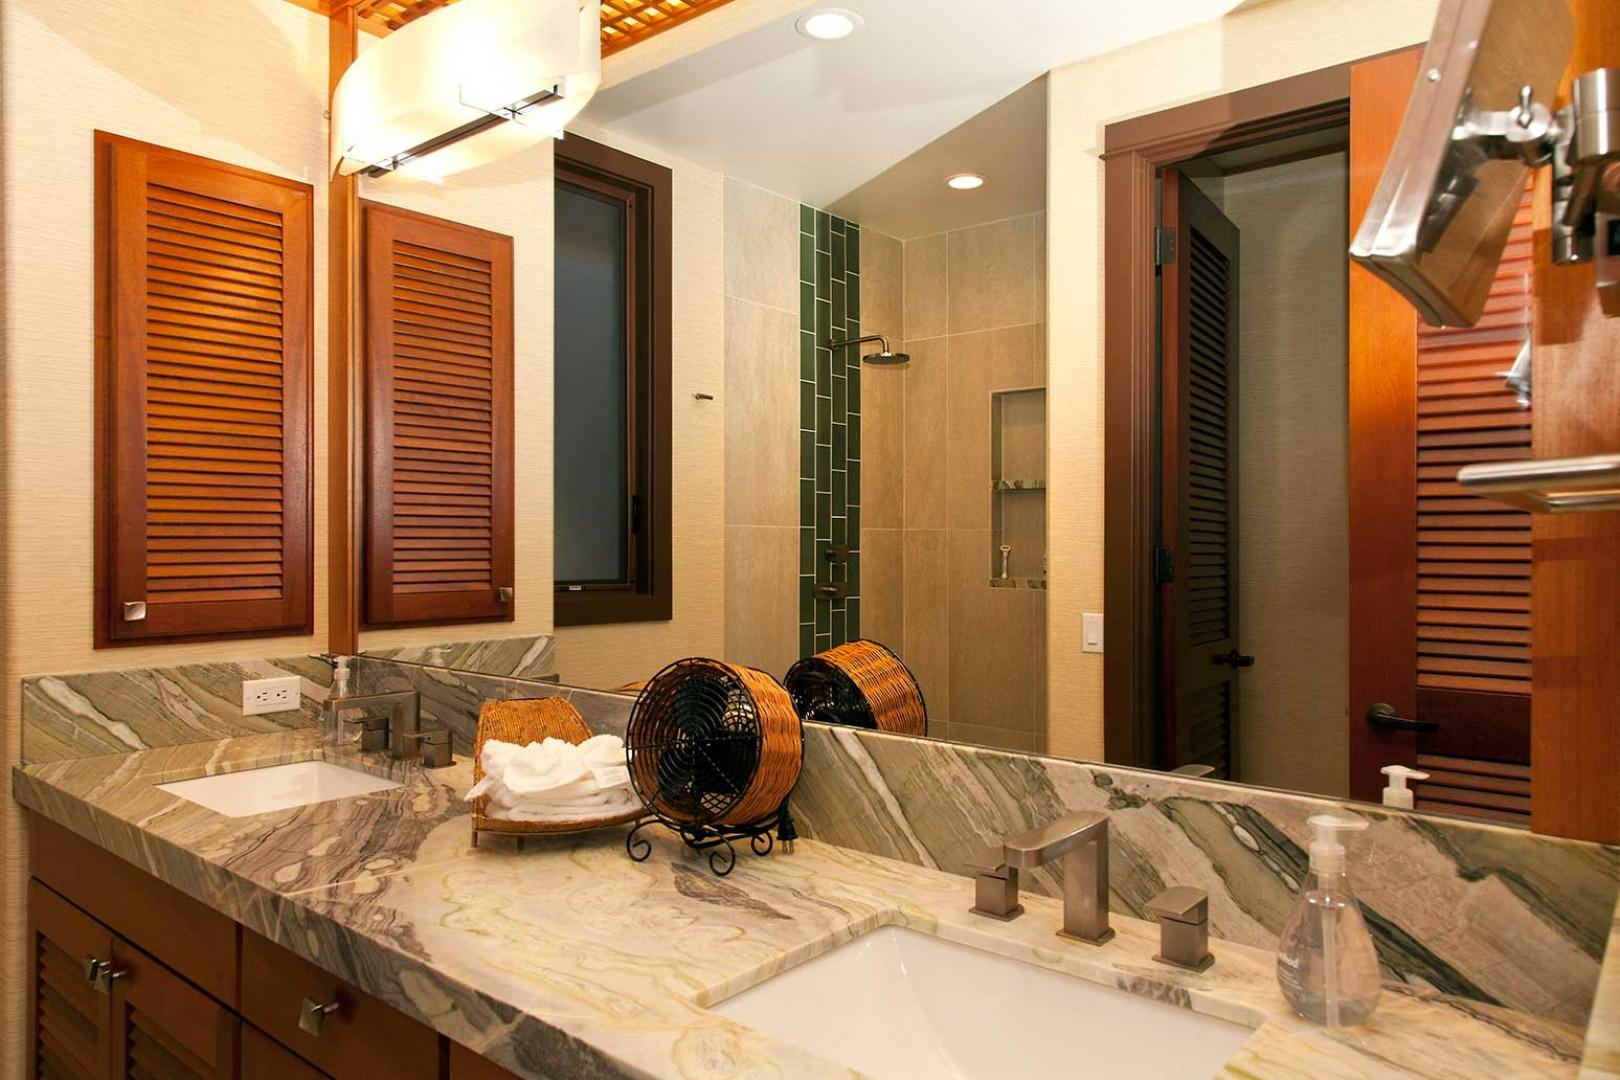 Second and third en suite baths share same design: dual sinks, granite counters, walk-in showers, and privacy commodes.